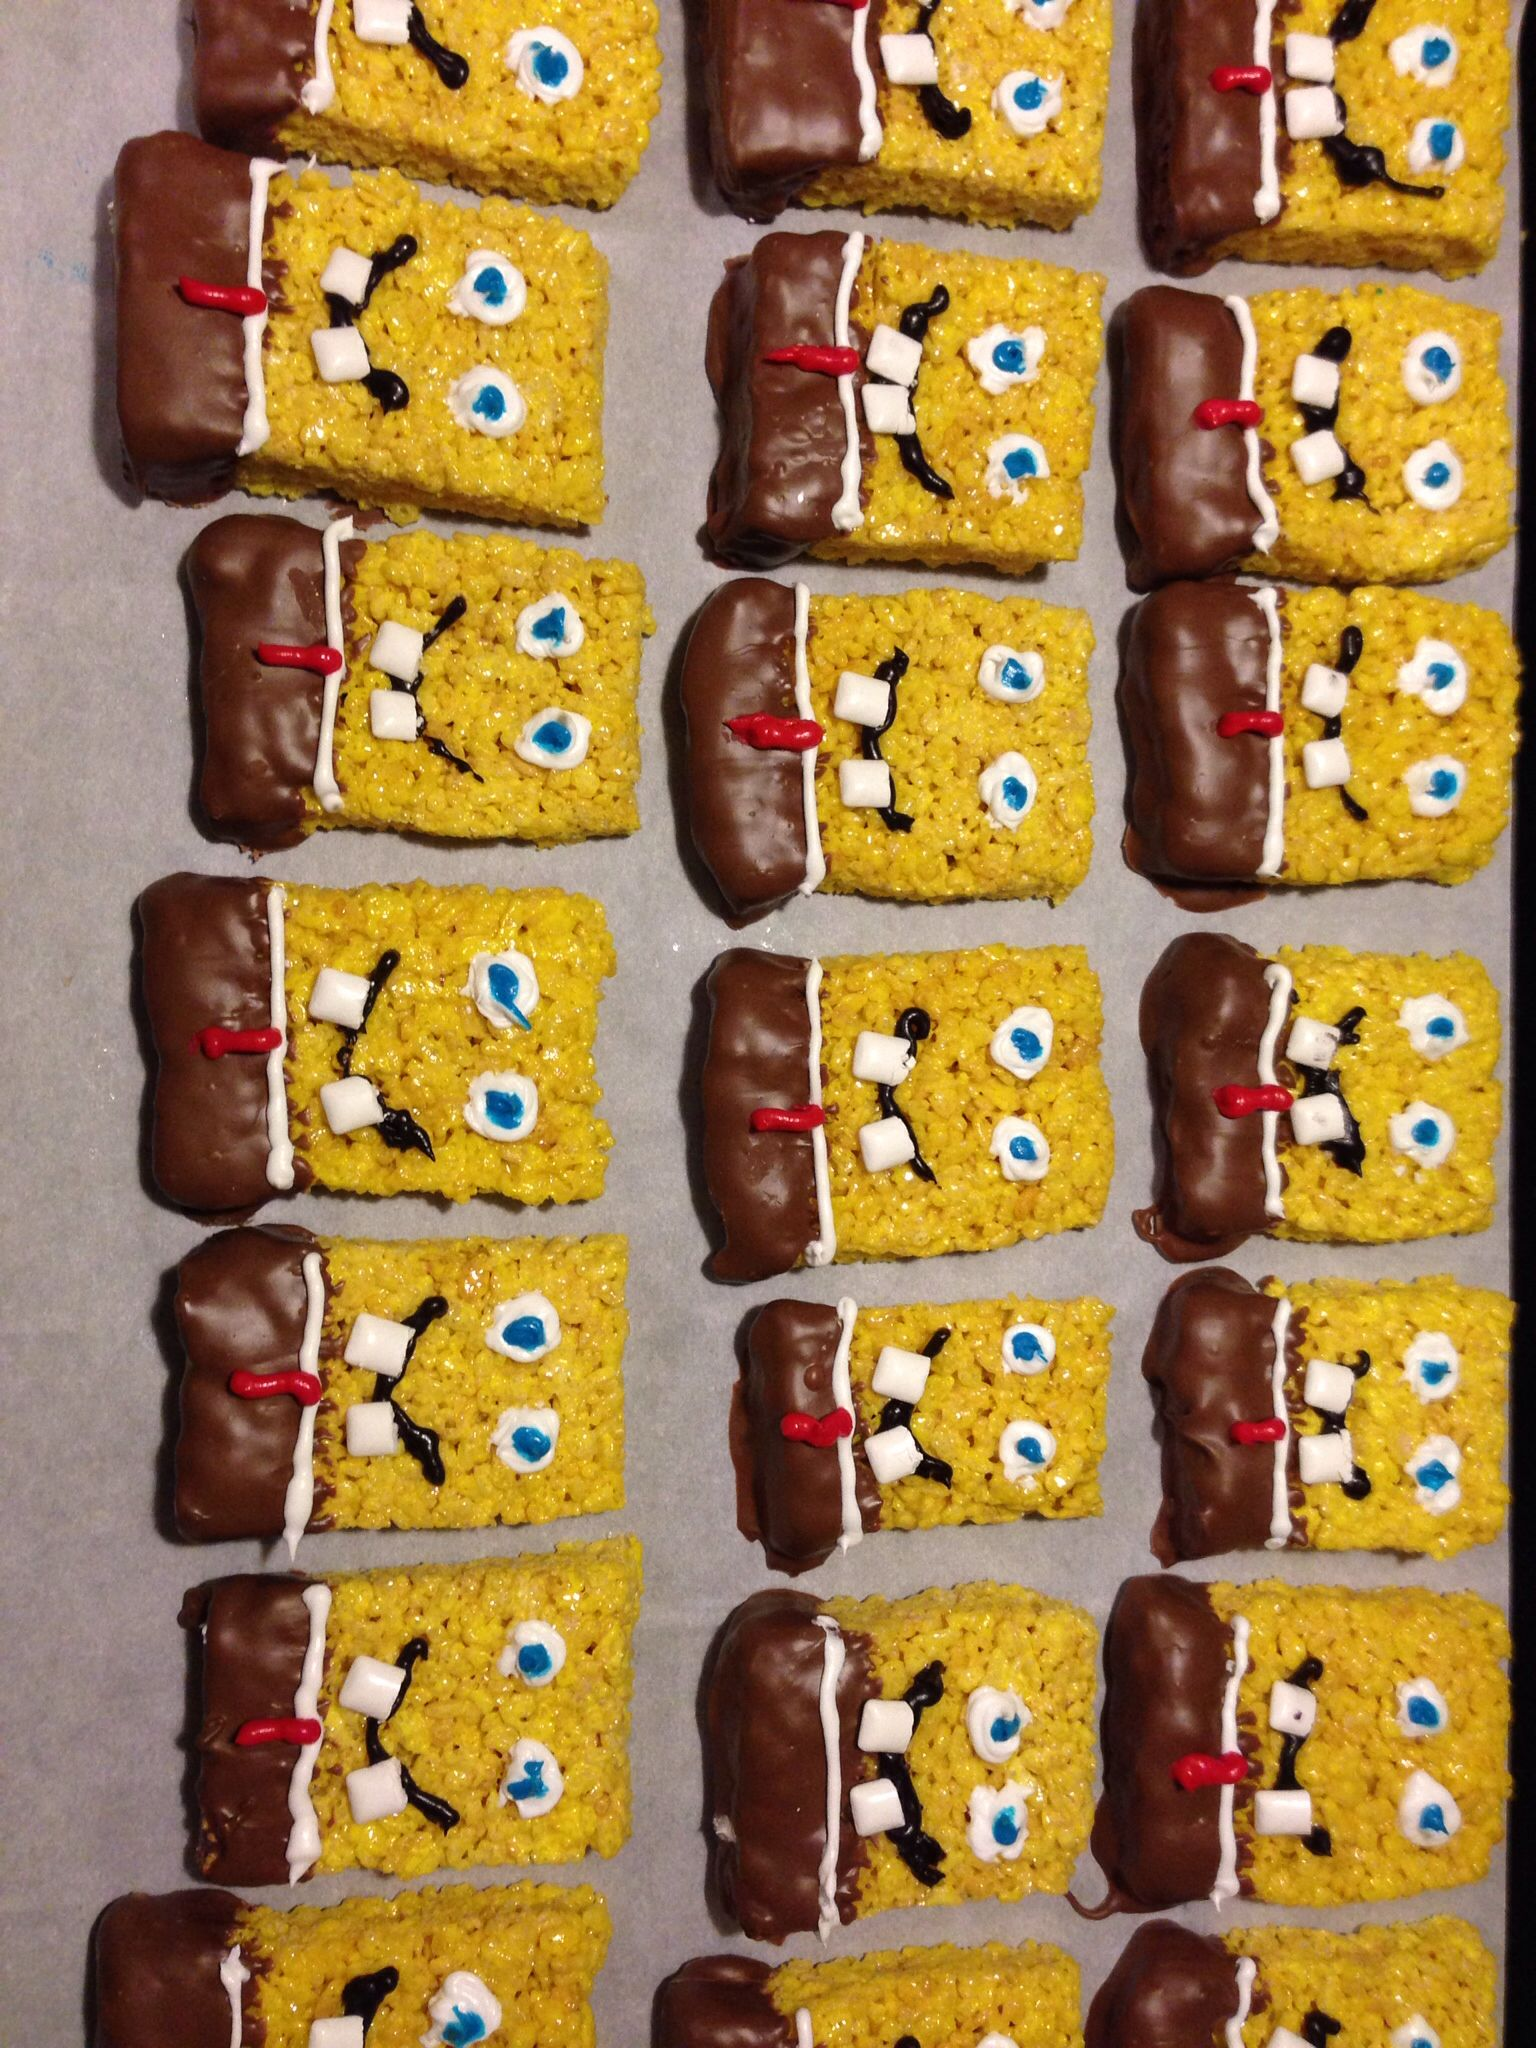 Spongebob rice crispy treats. Make regular rice crispies but add ...